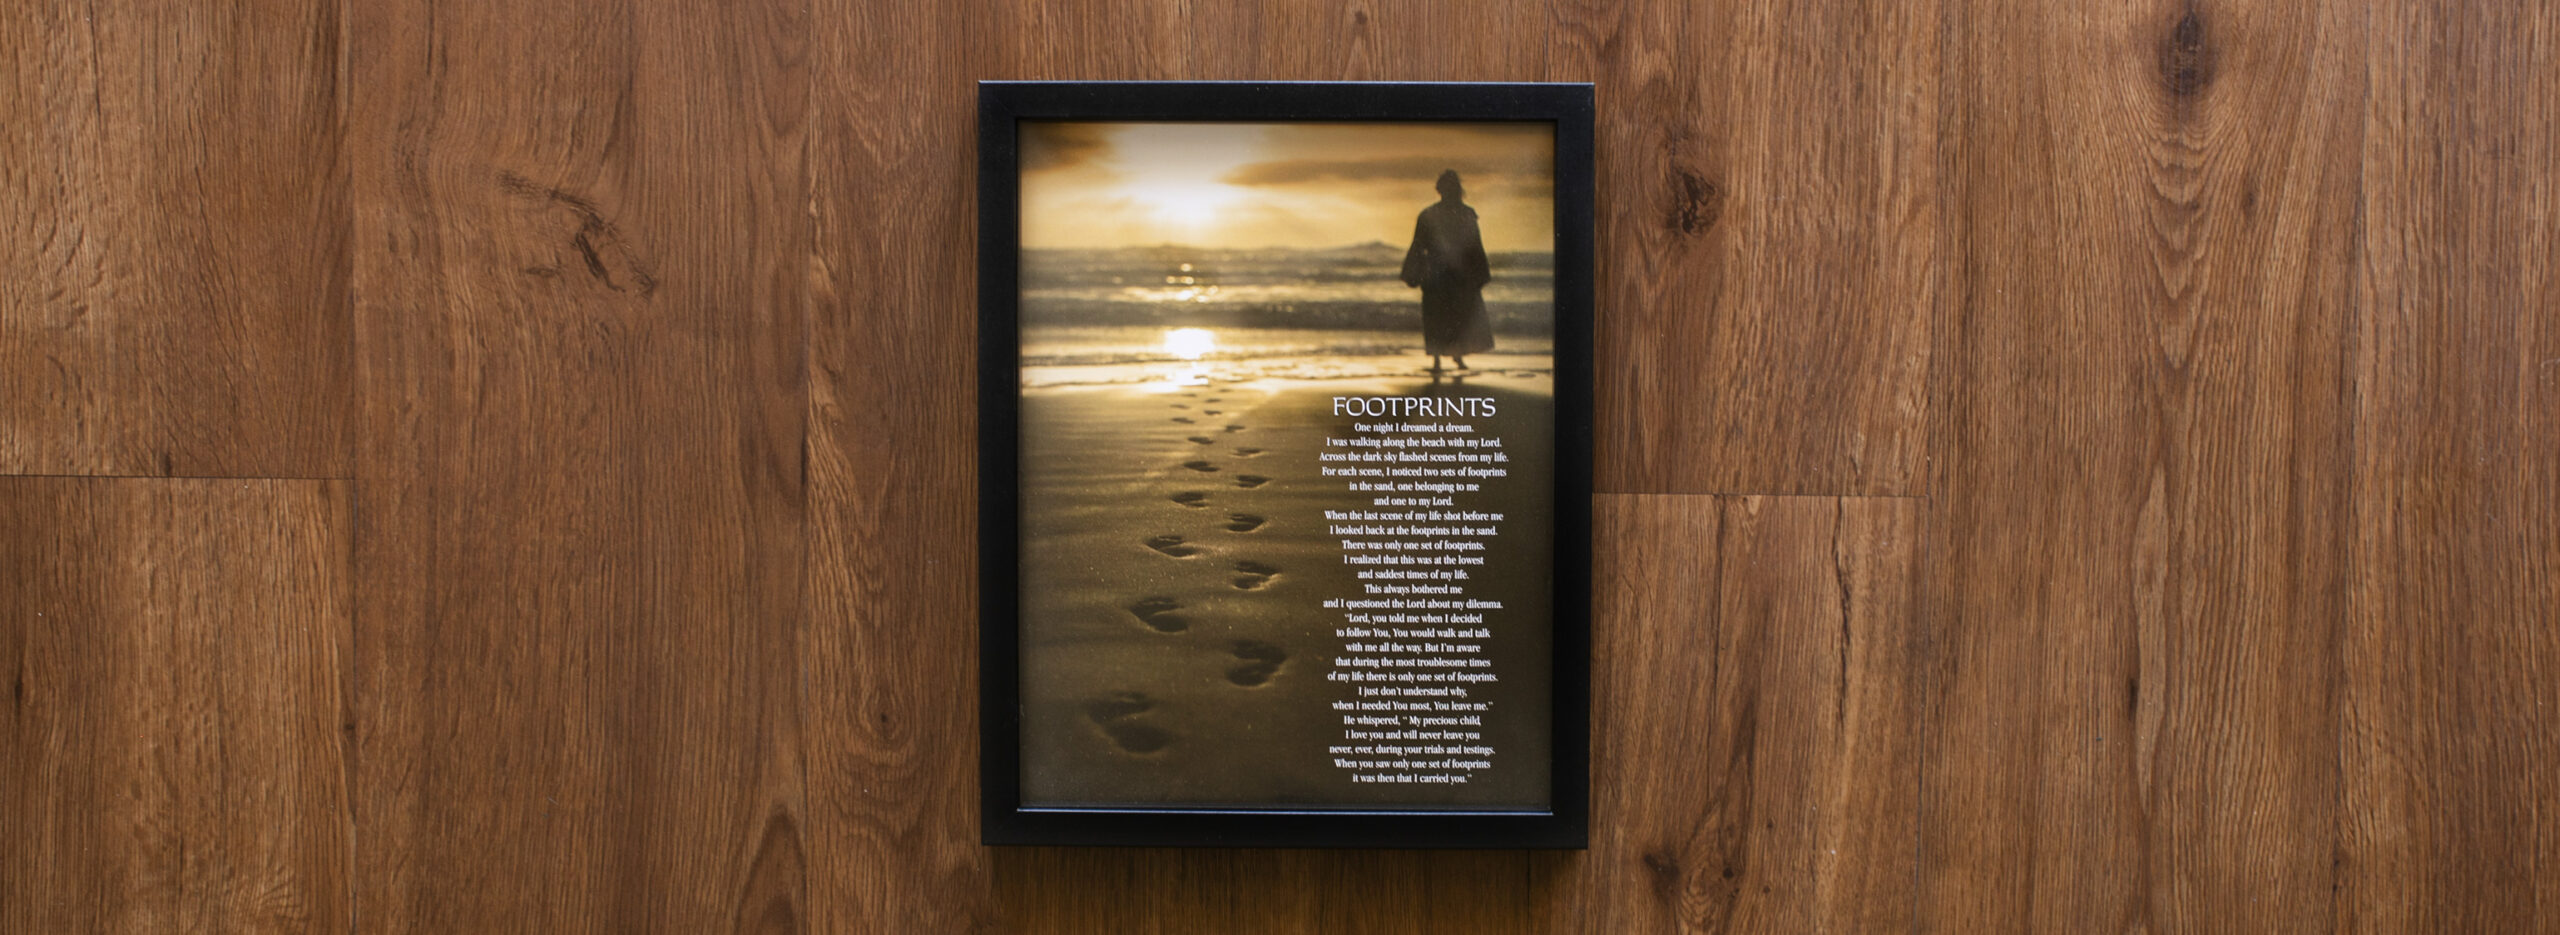 Footprints Poem Wood Framed Wall Art